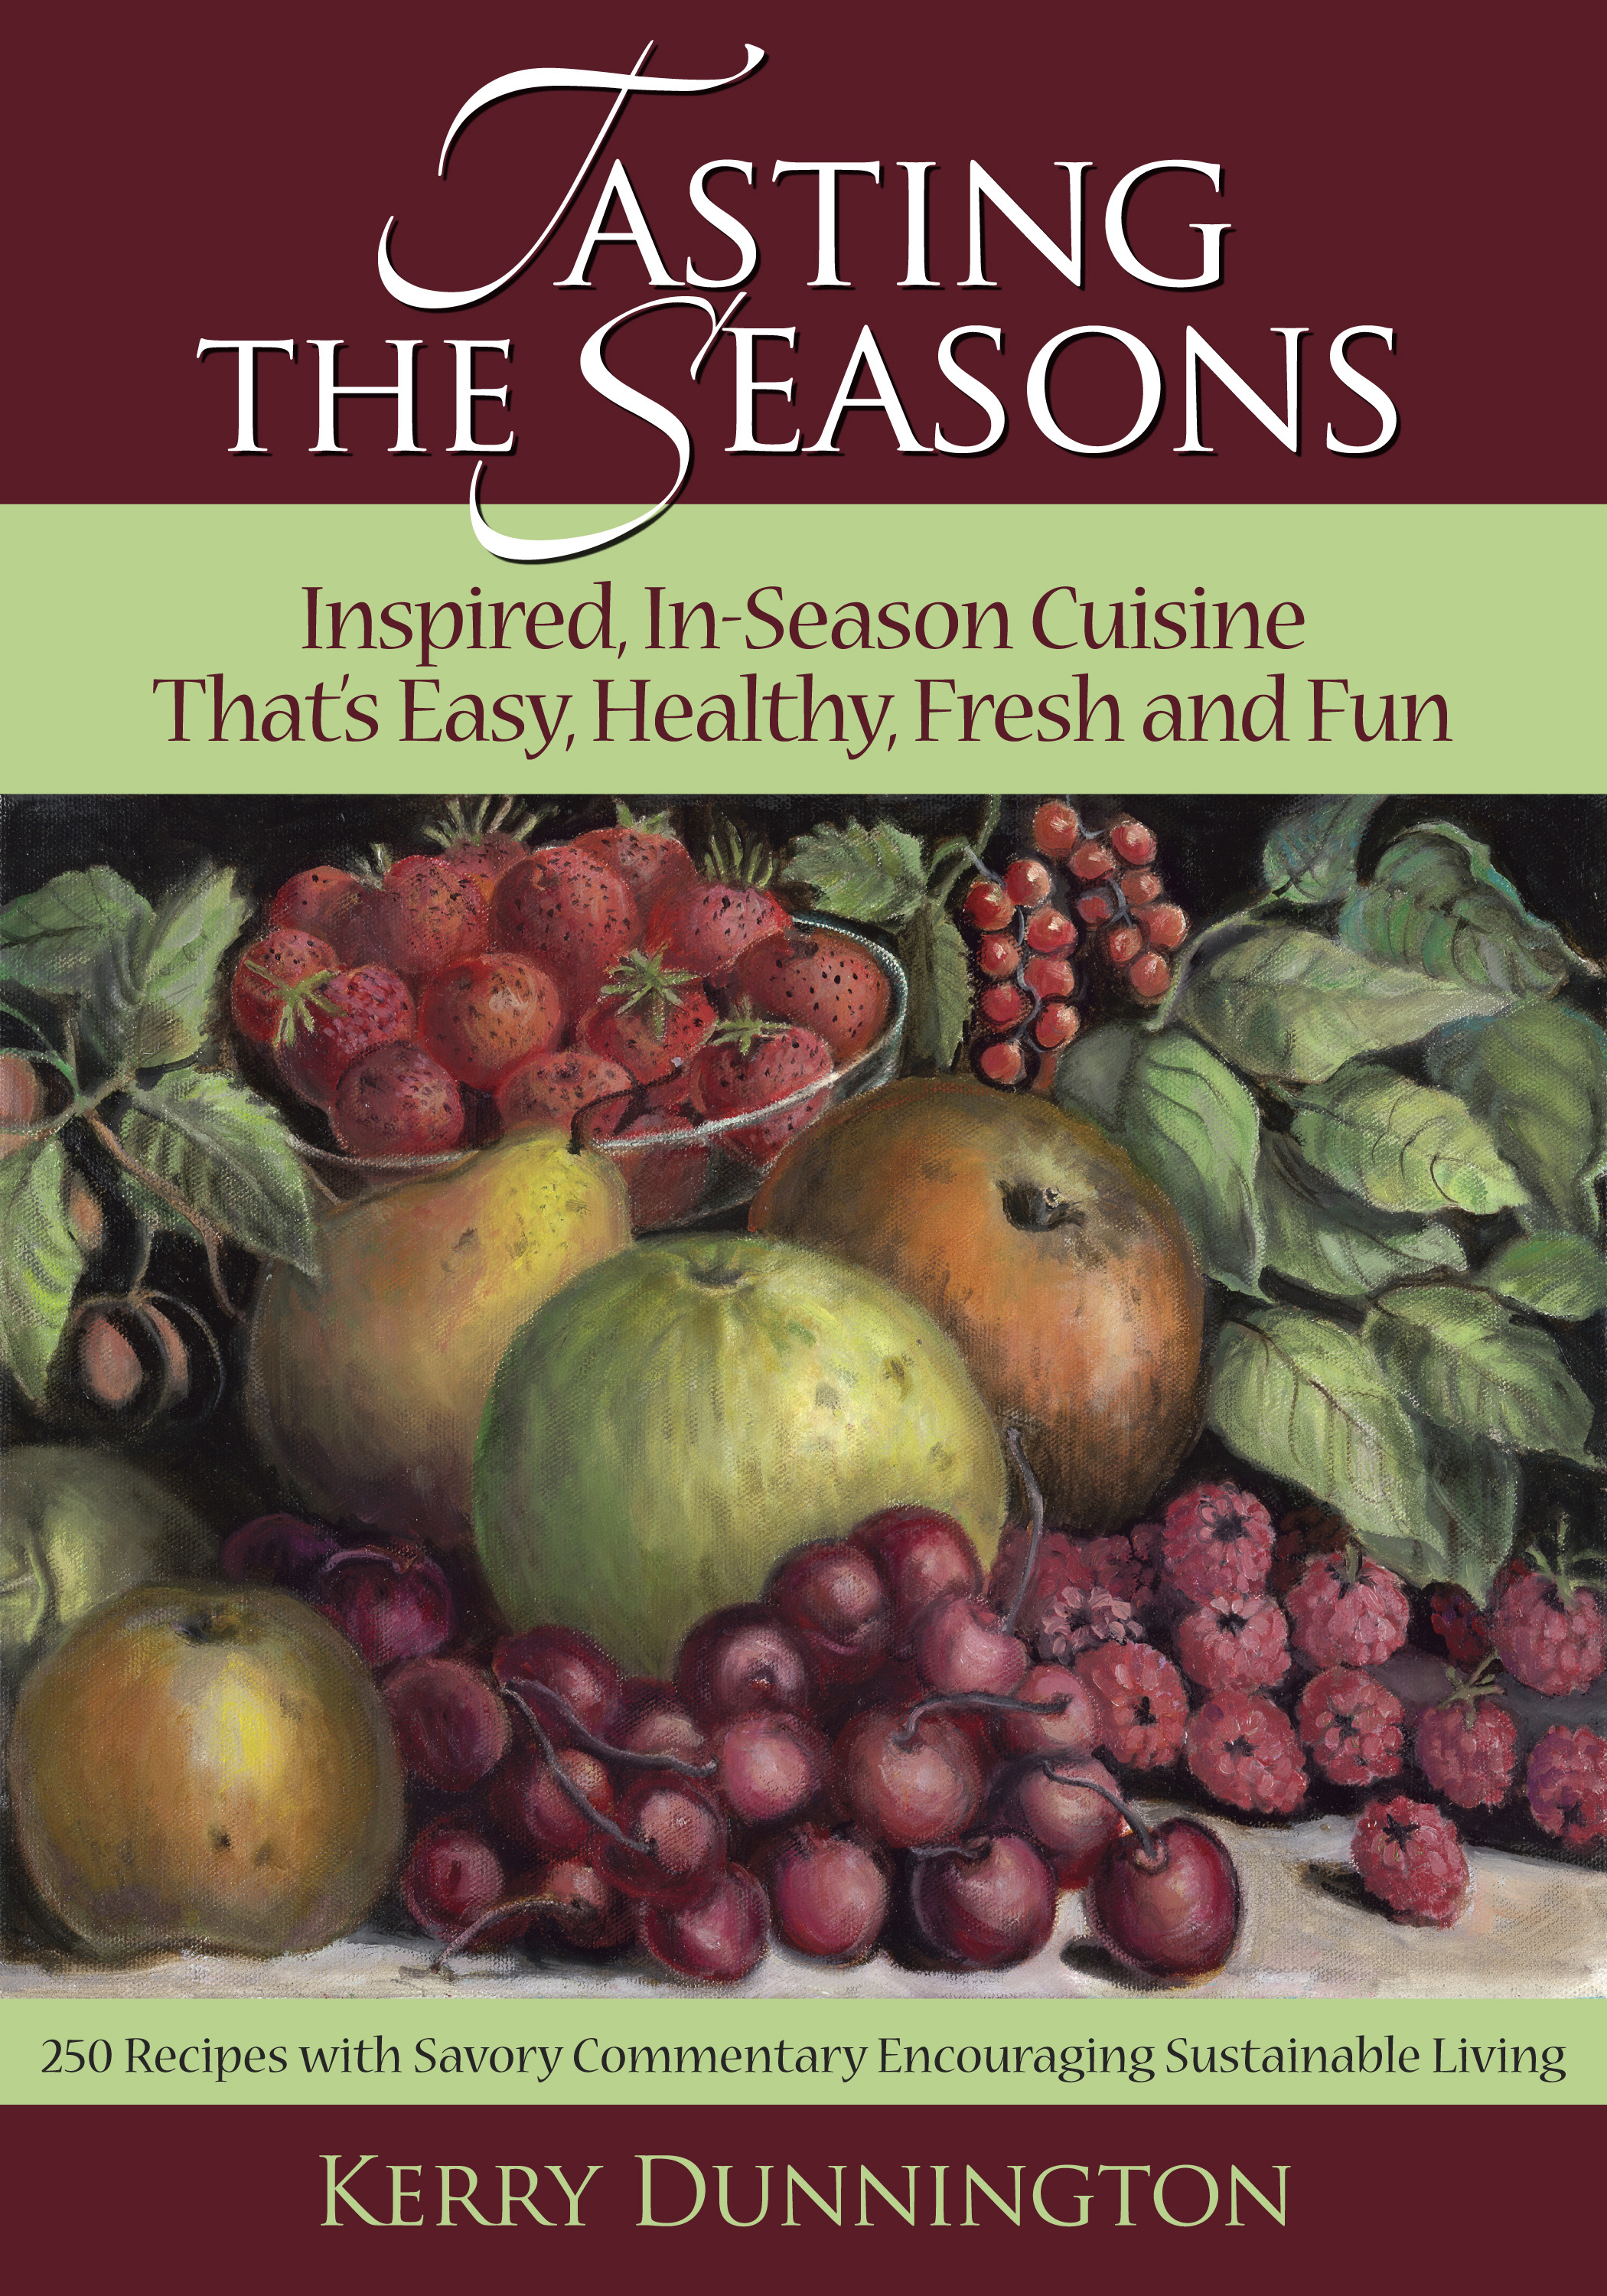 Tasting The Seasons: Inspired In-Season Cuisine That's Easy, Healthy, Fresh and Fun